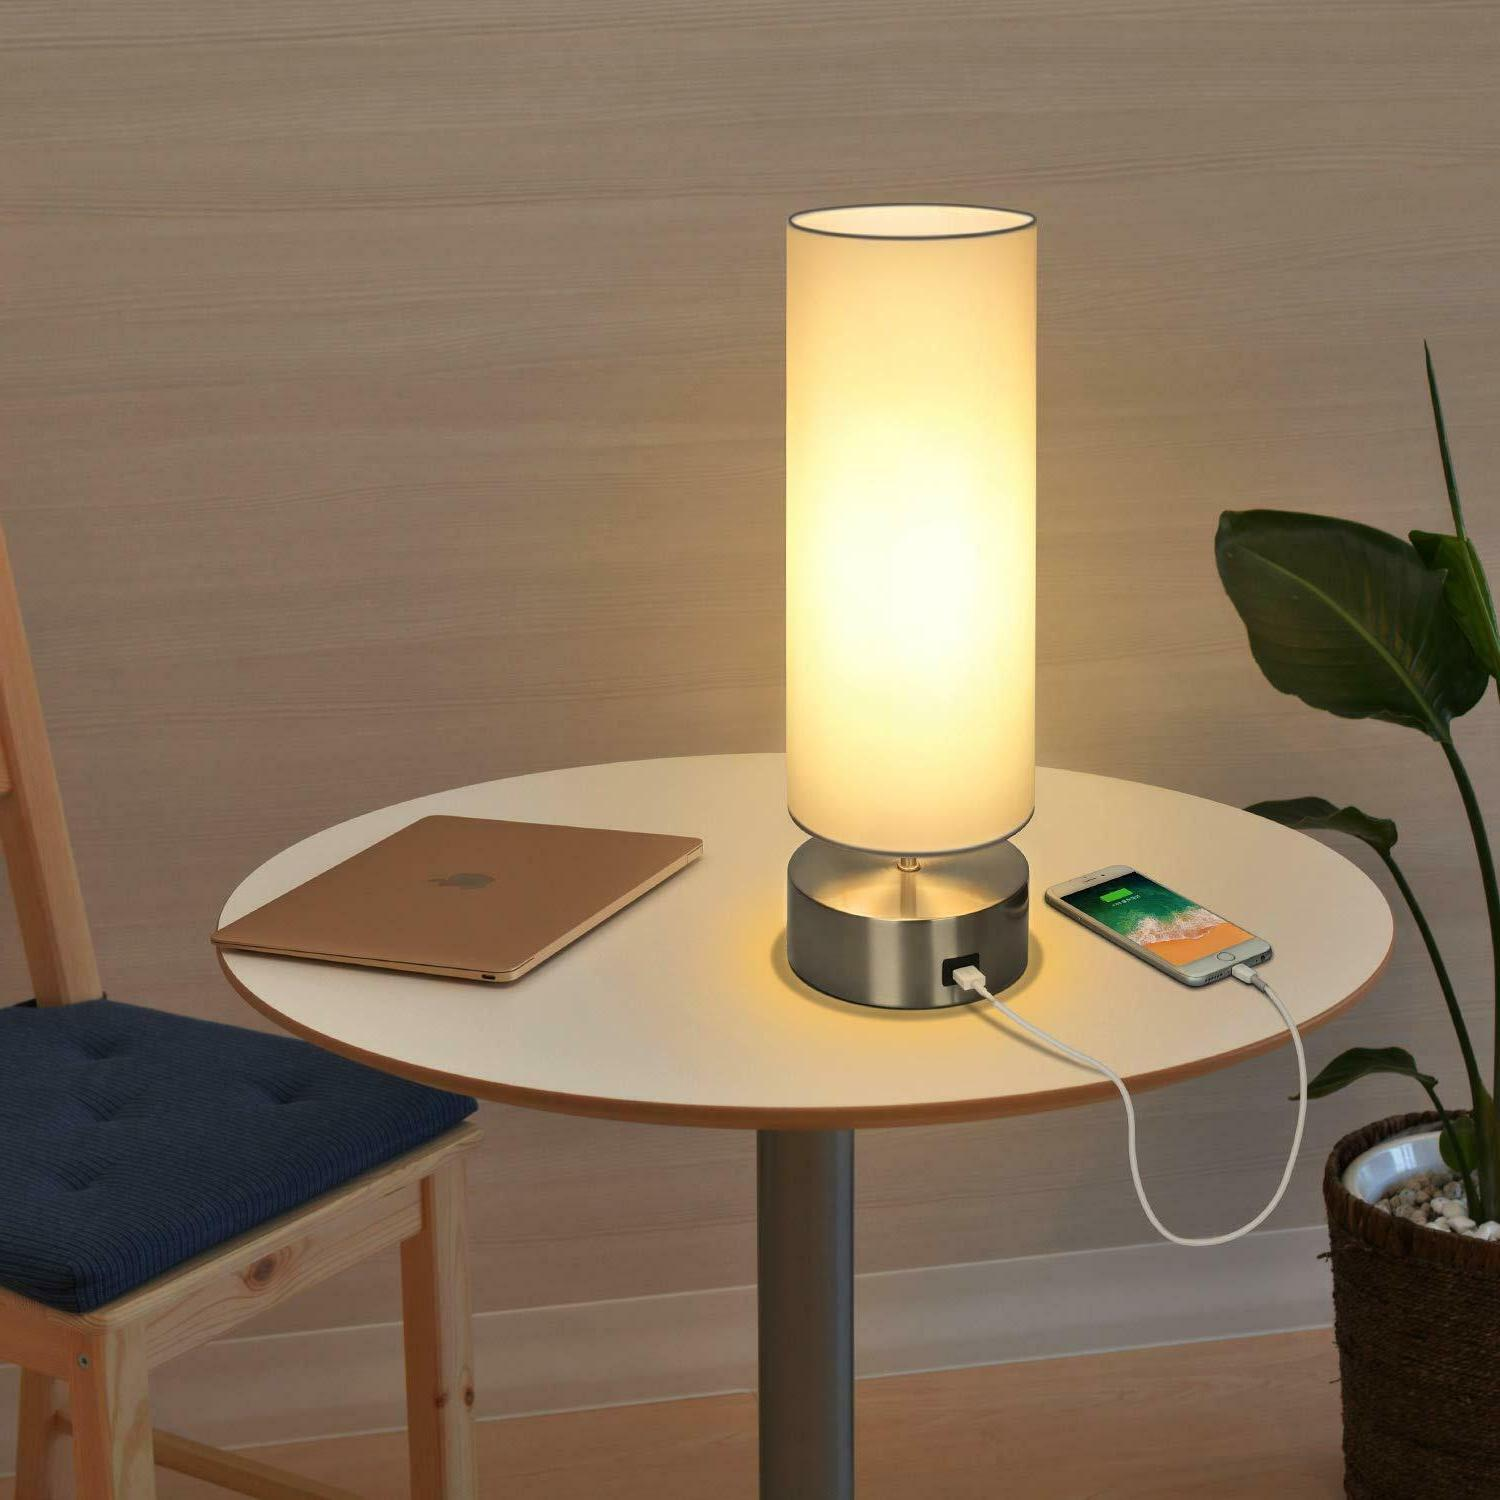 USB Lamp, Touch Control Bedside Nightstand Quick USB